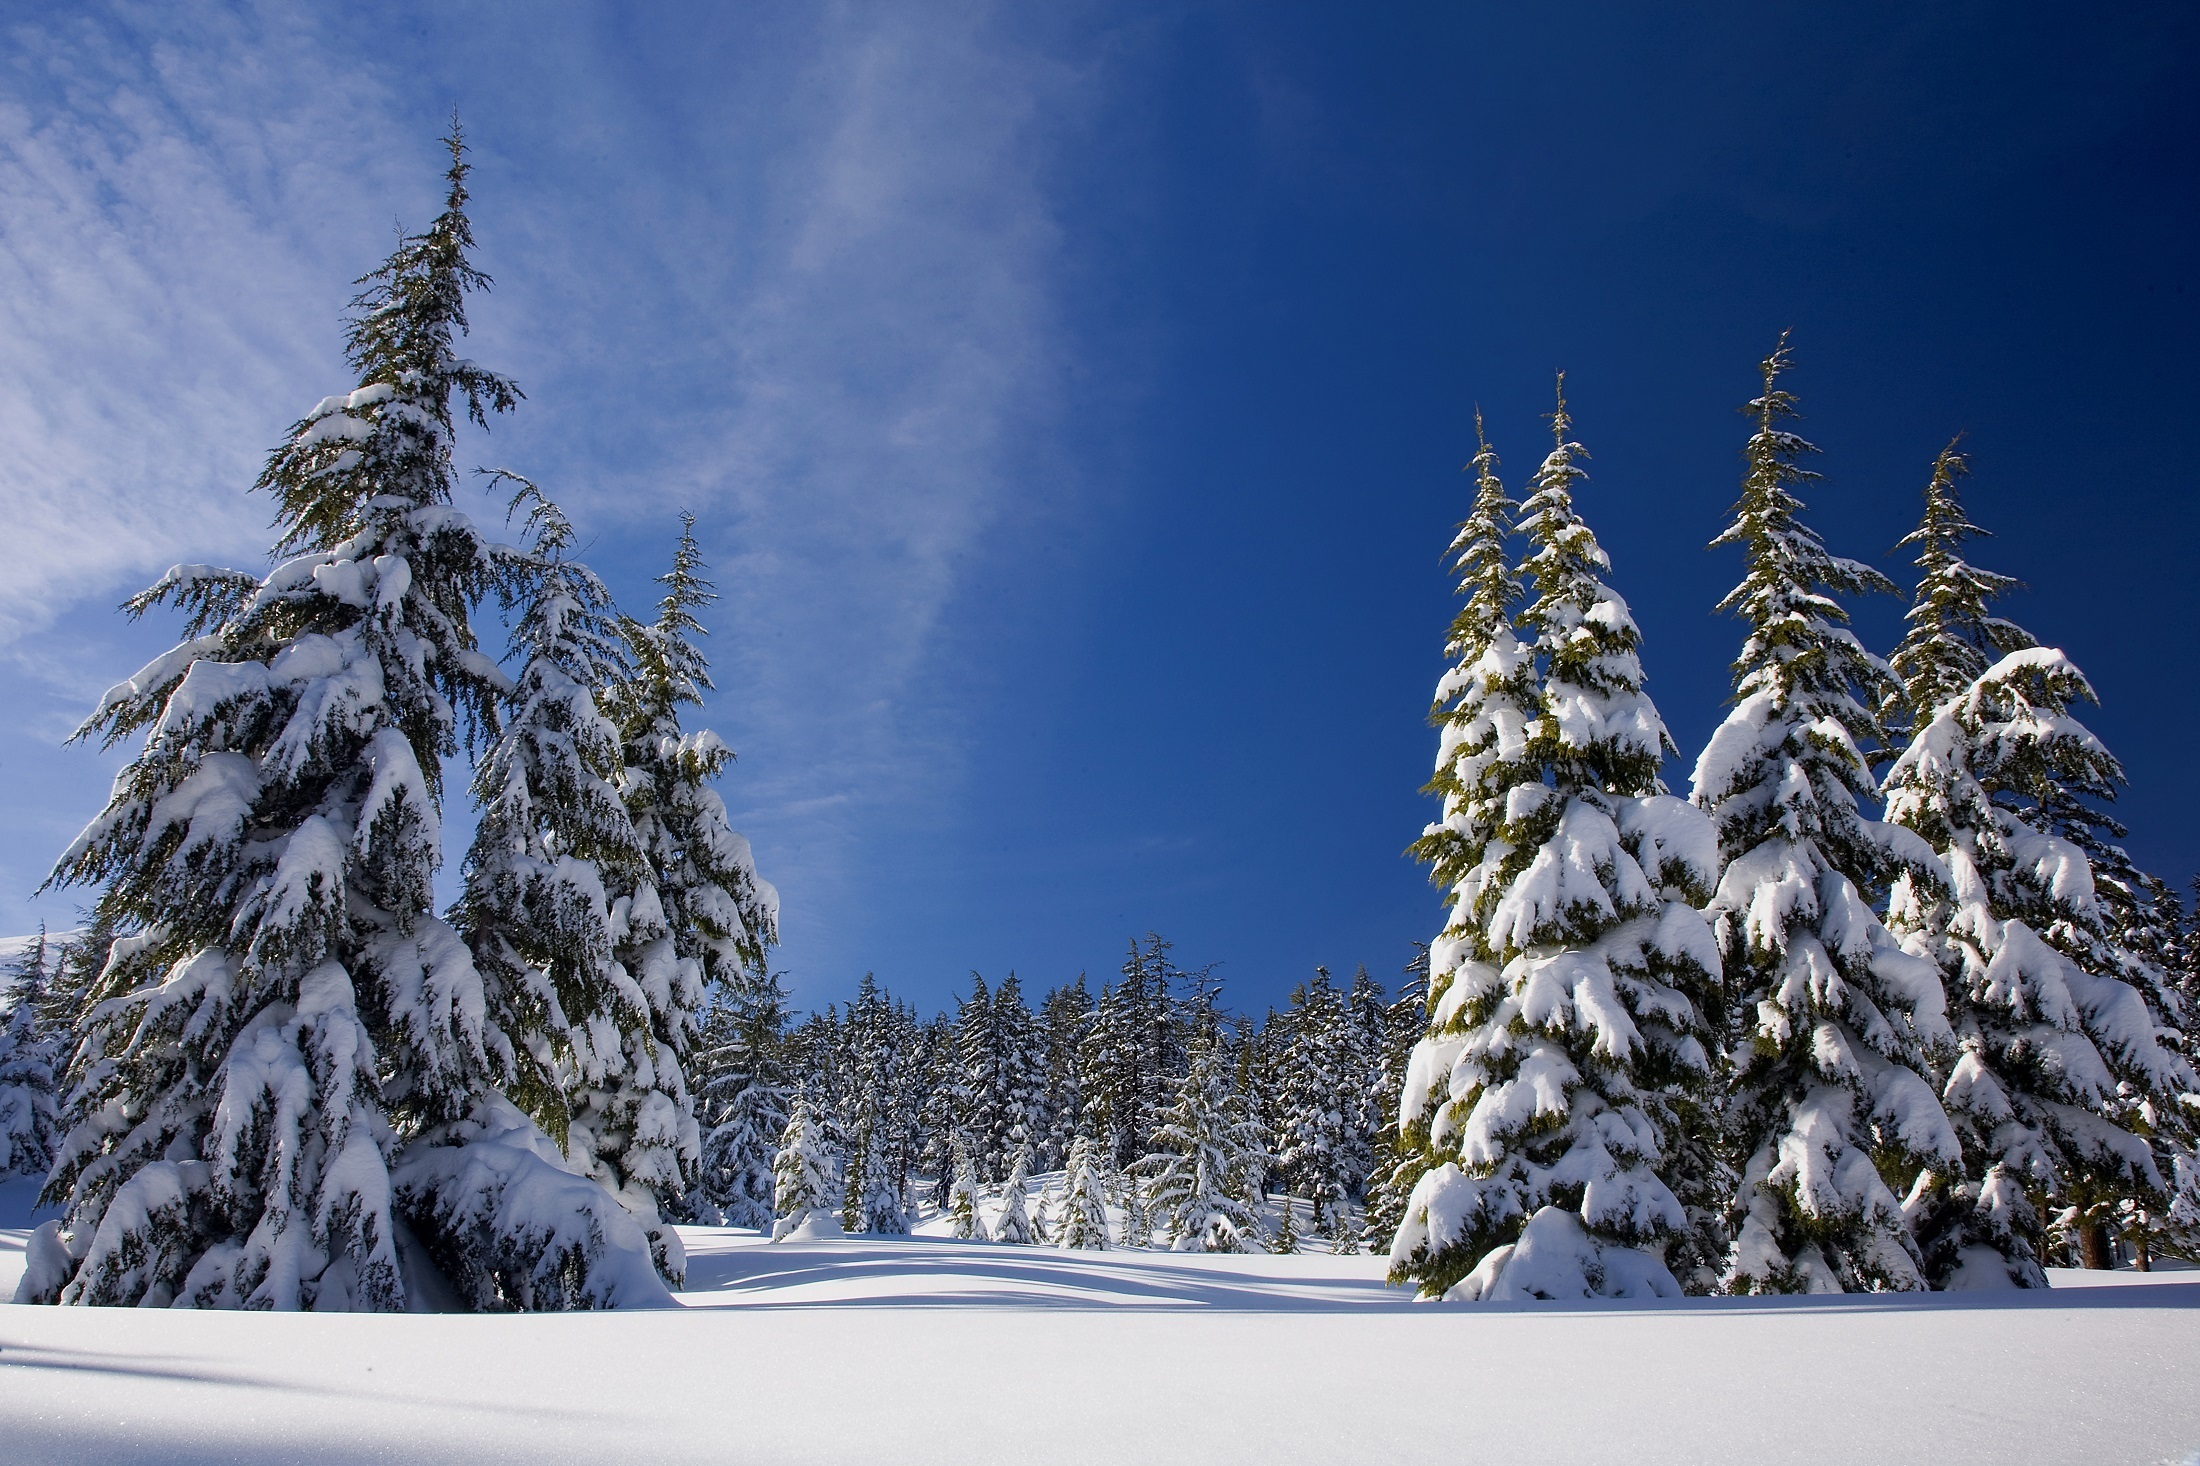 Winter snow pine trees hd nature 4k wallpapers images - Images of pine trees in snow ...